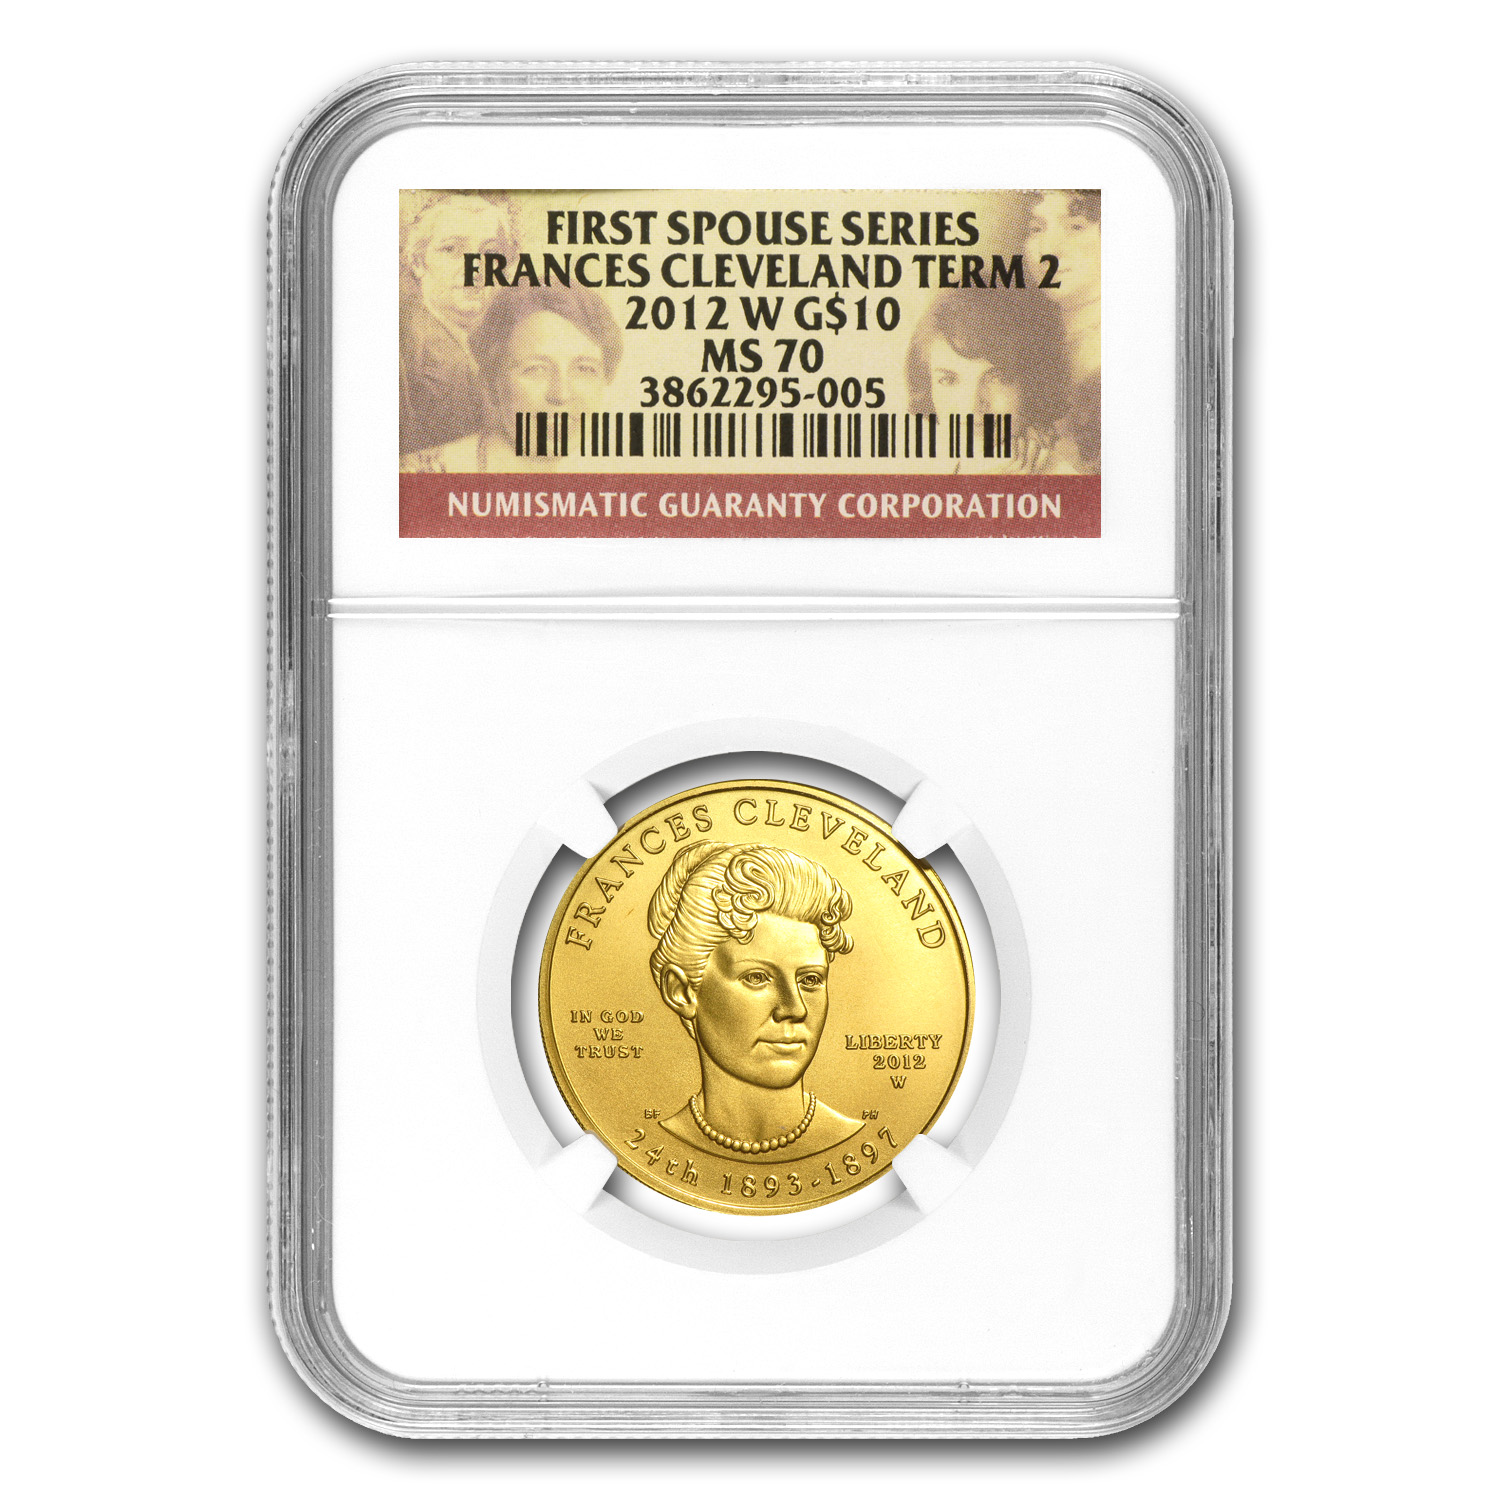 2012-W 1/2 oz Proof Gold Frances Cleveland 2nd Term MS-70 NGC